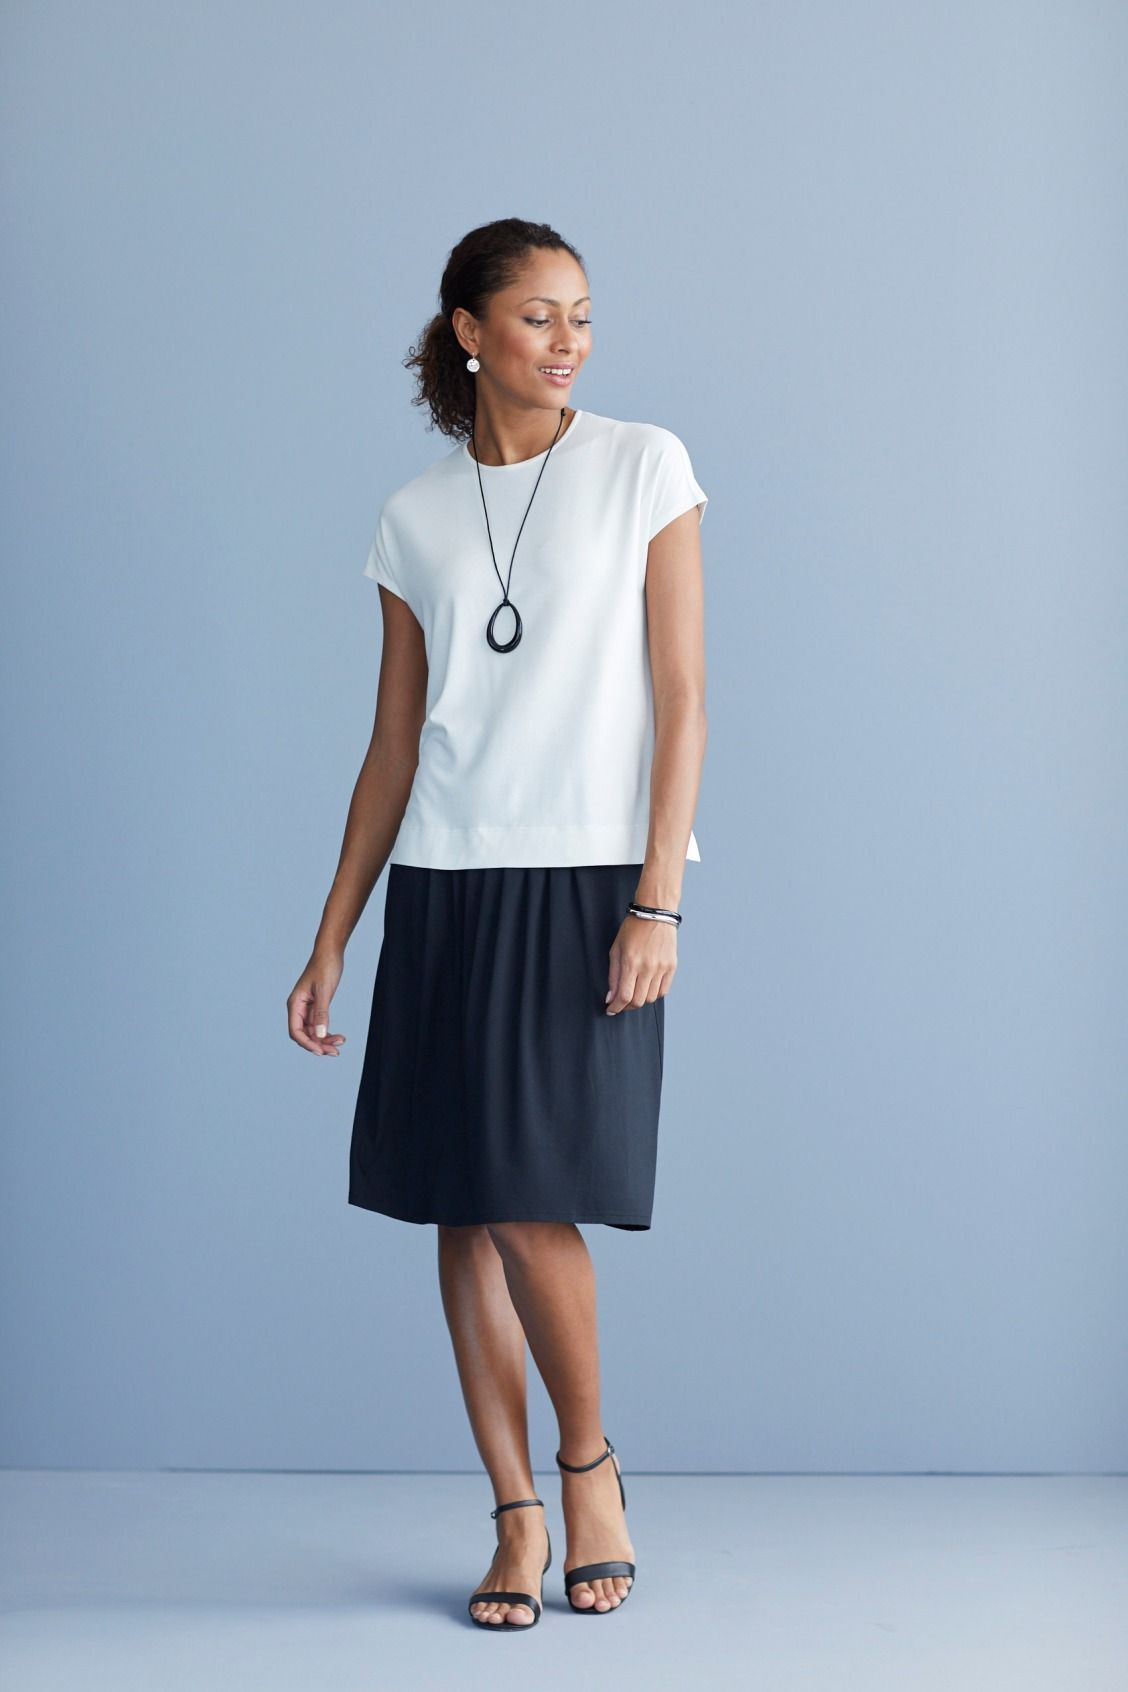 Watch - A skirt line outfit video